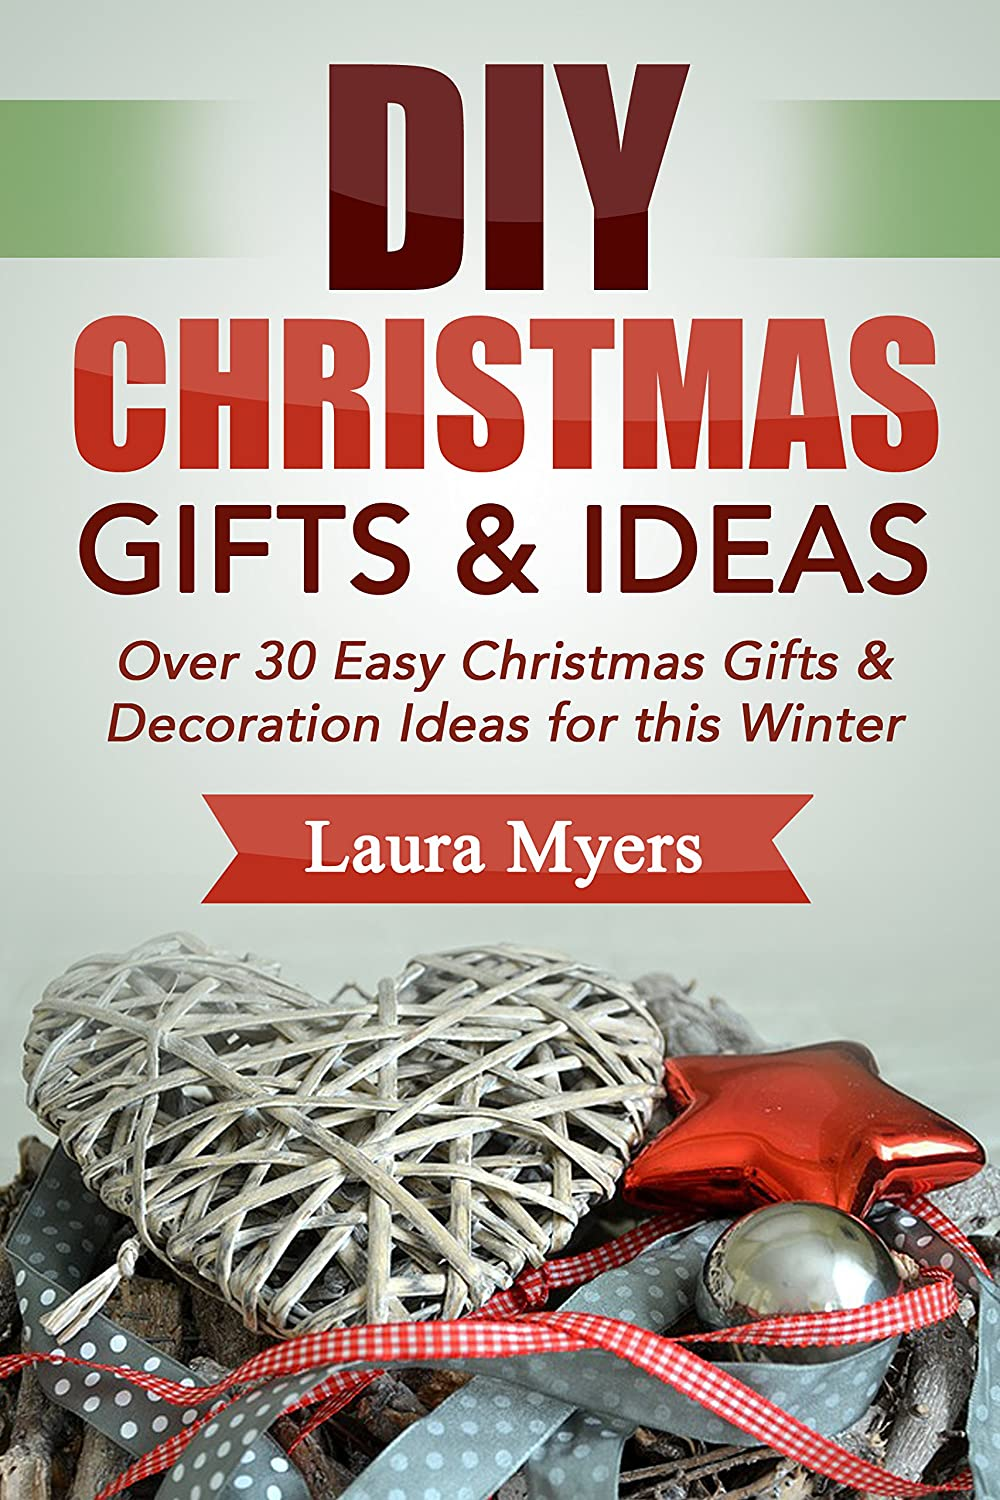 http://www.amazon.com/DIY-Christmas-Gift-Ideas-Decoration-ebook/dp/B00QR2FH8K/ref=as_sl_pc_ss_til?tag=lettfromahome-20&linkCode=w01&linkId=5Z55NIUGZLBASB6F&creativeASIN=B00QR2FH8K